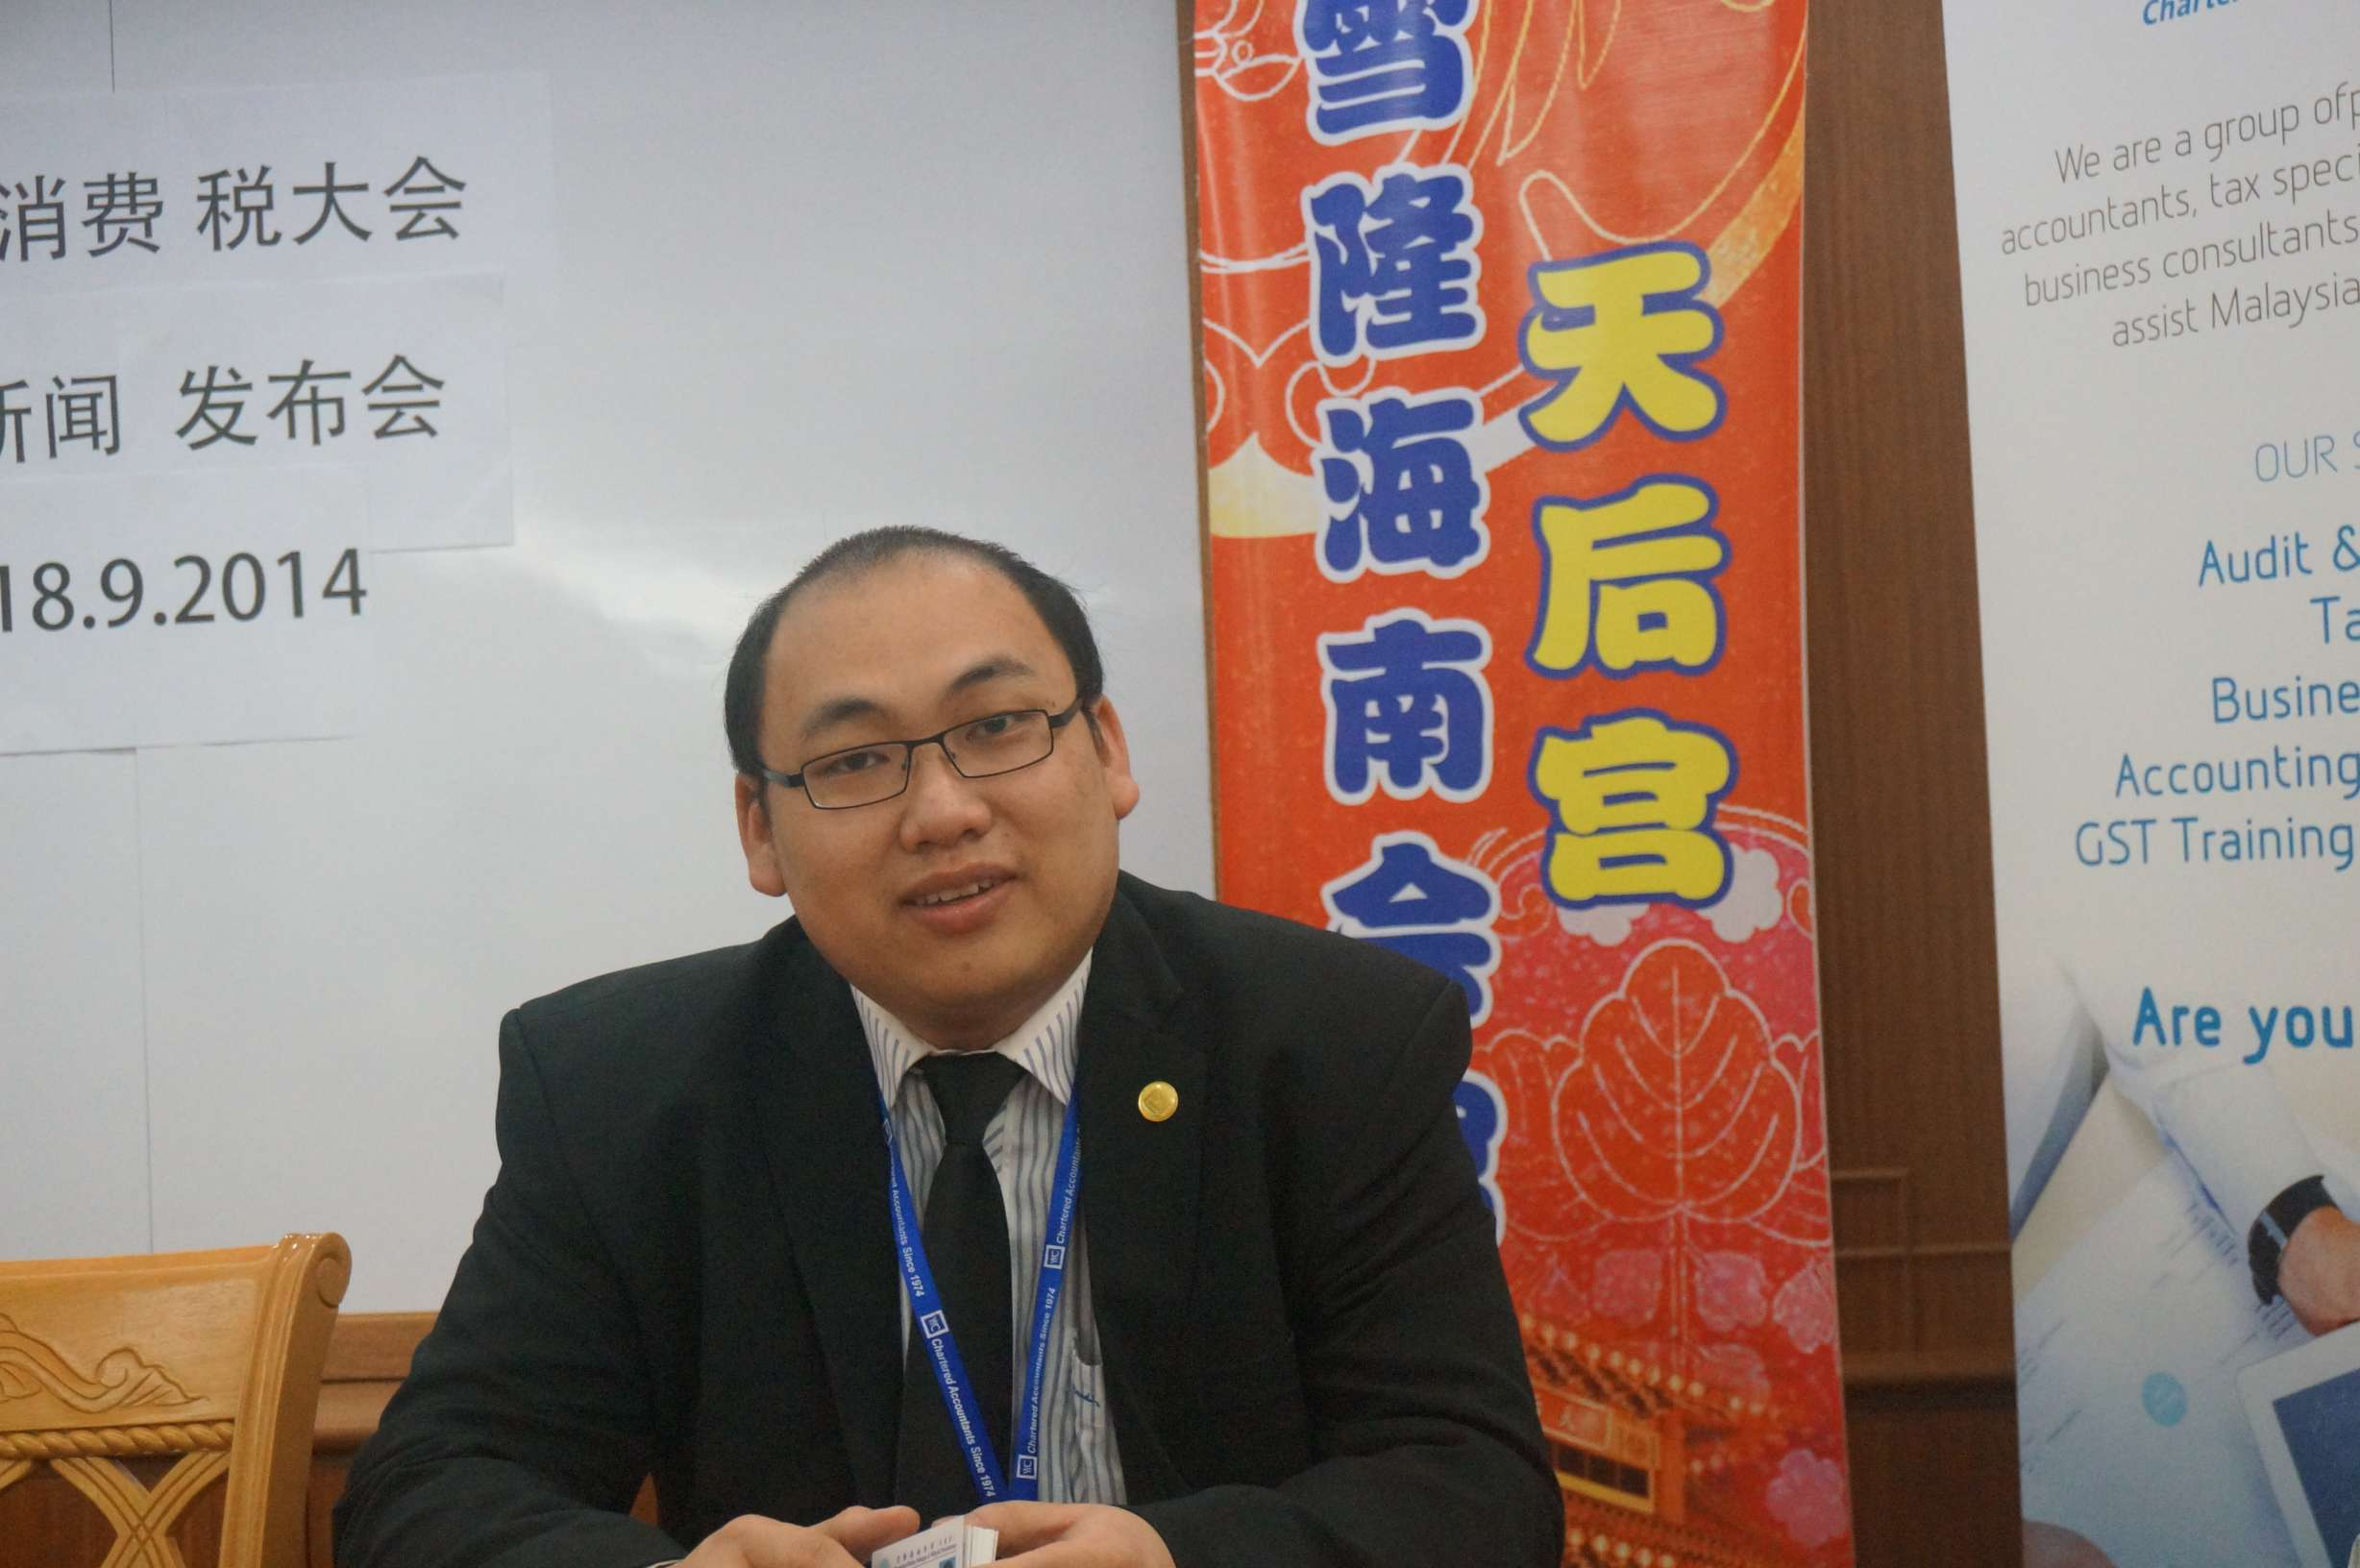 Press Conference at China Press - 18 September 2014